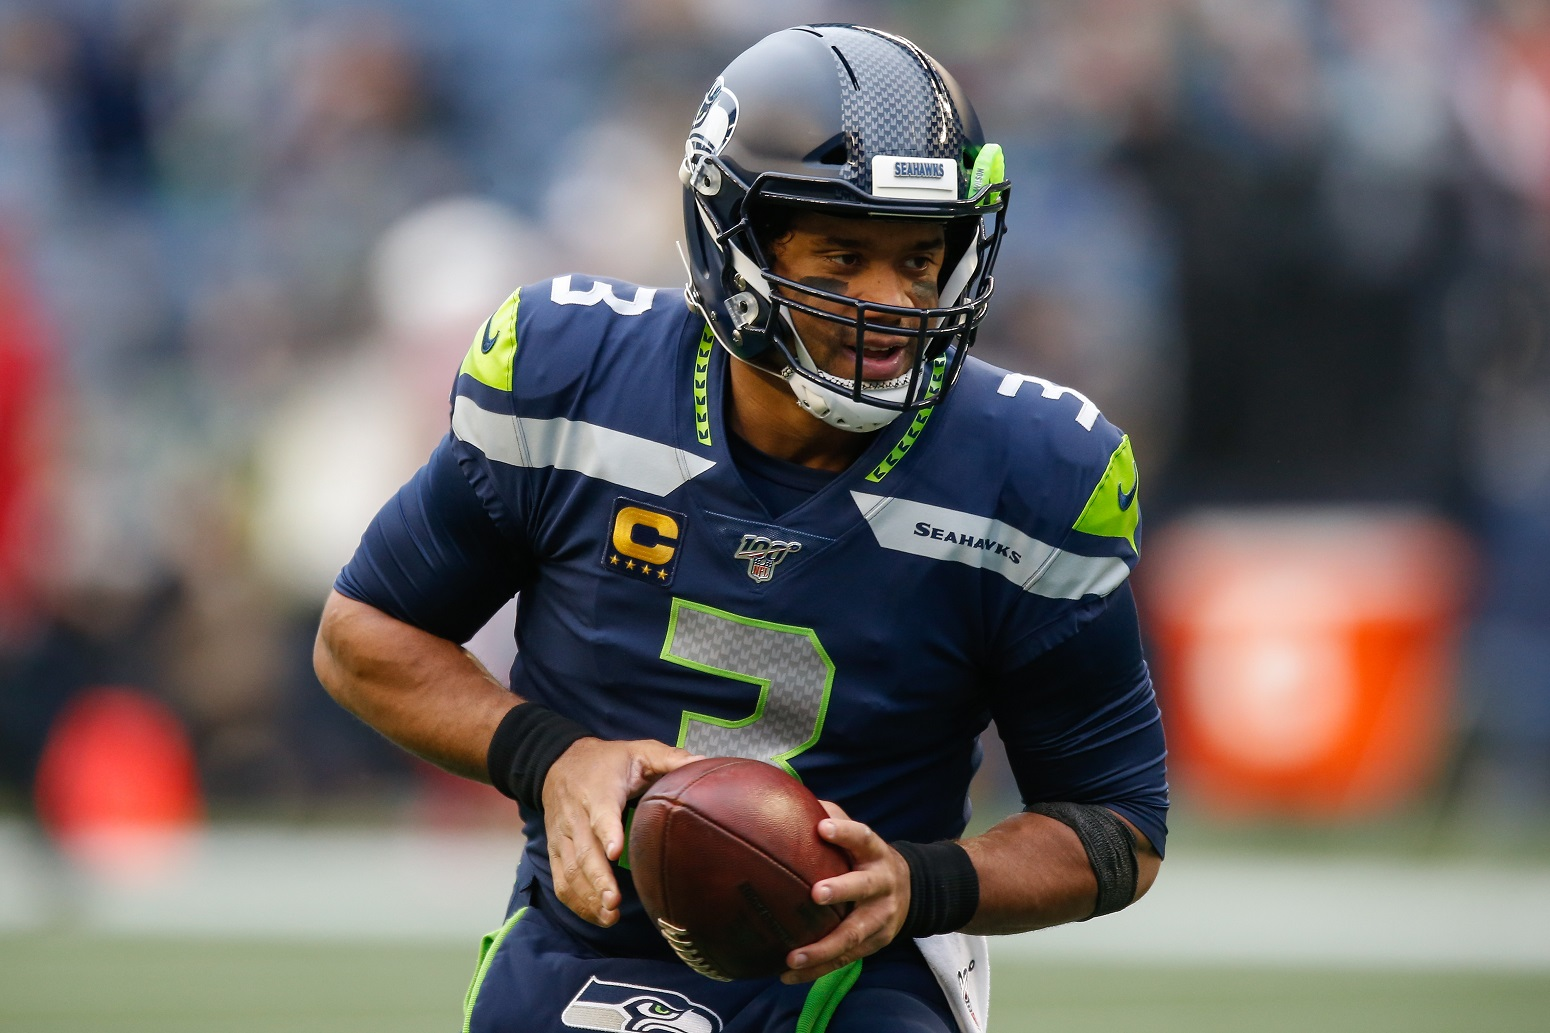 Russell Wilson Seahawks NFL scary message